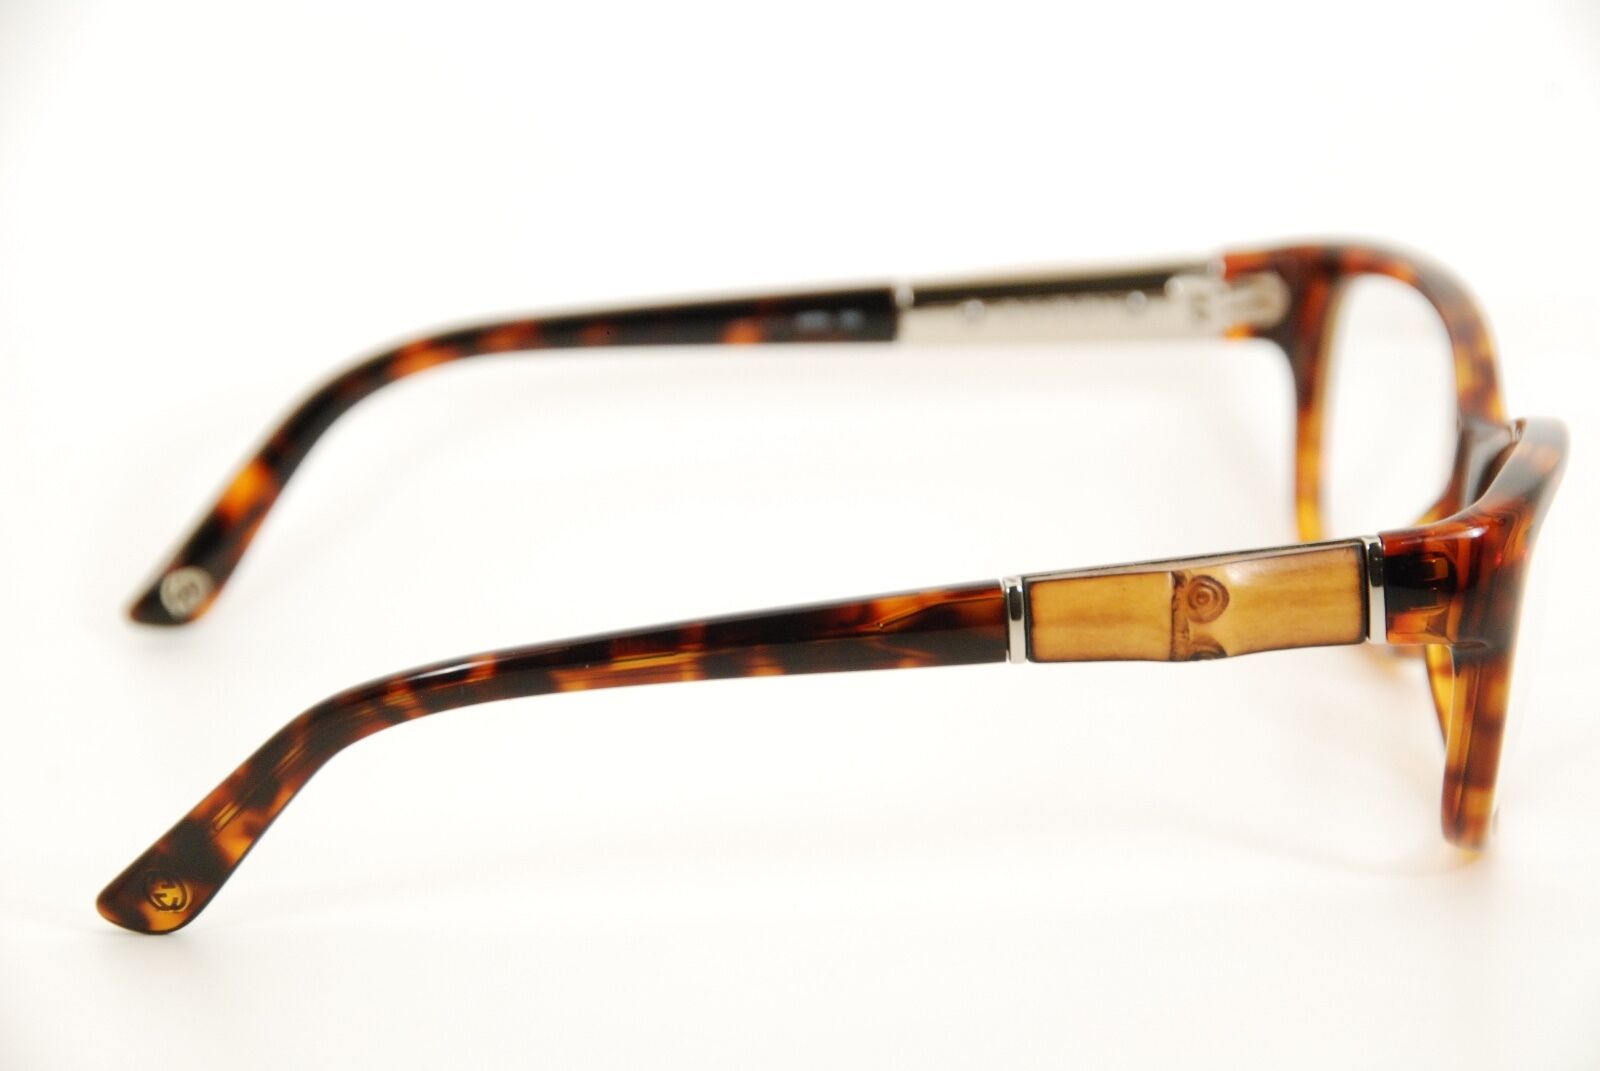 5f356c5db31 Authentic Gucci GG 3673 4ua Black wood 53mm Italy Frames Eyeglasses RX for  sale online